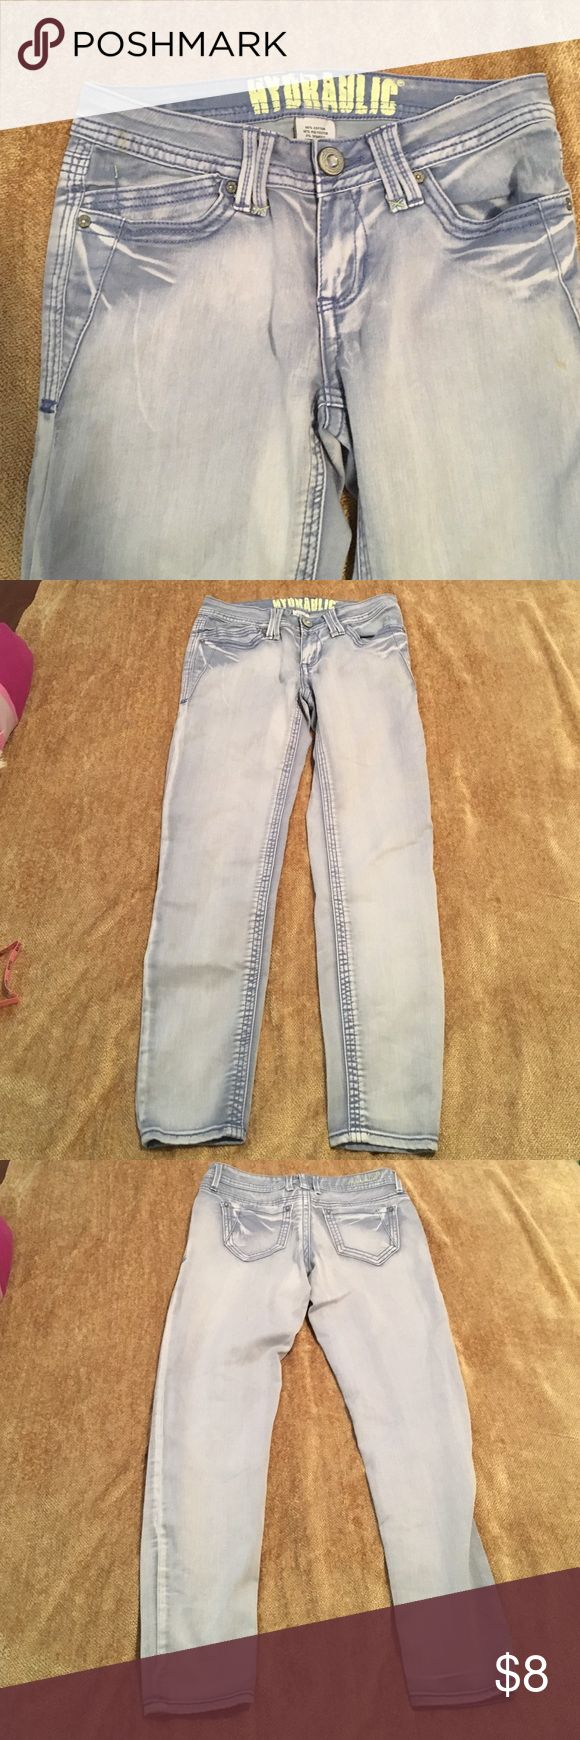 Skinny jeans Hydraulic brand light wash skinny jeans inseam is 26 inches bailey style size 9/10 66% cotton 32% polyester 2% spandex Hydraulic Jeans Skinny